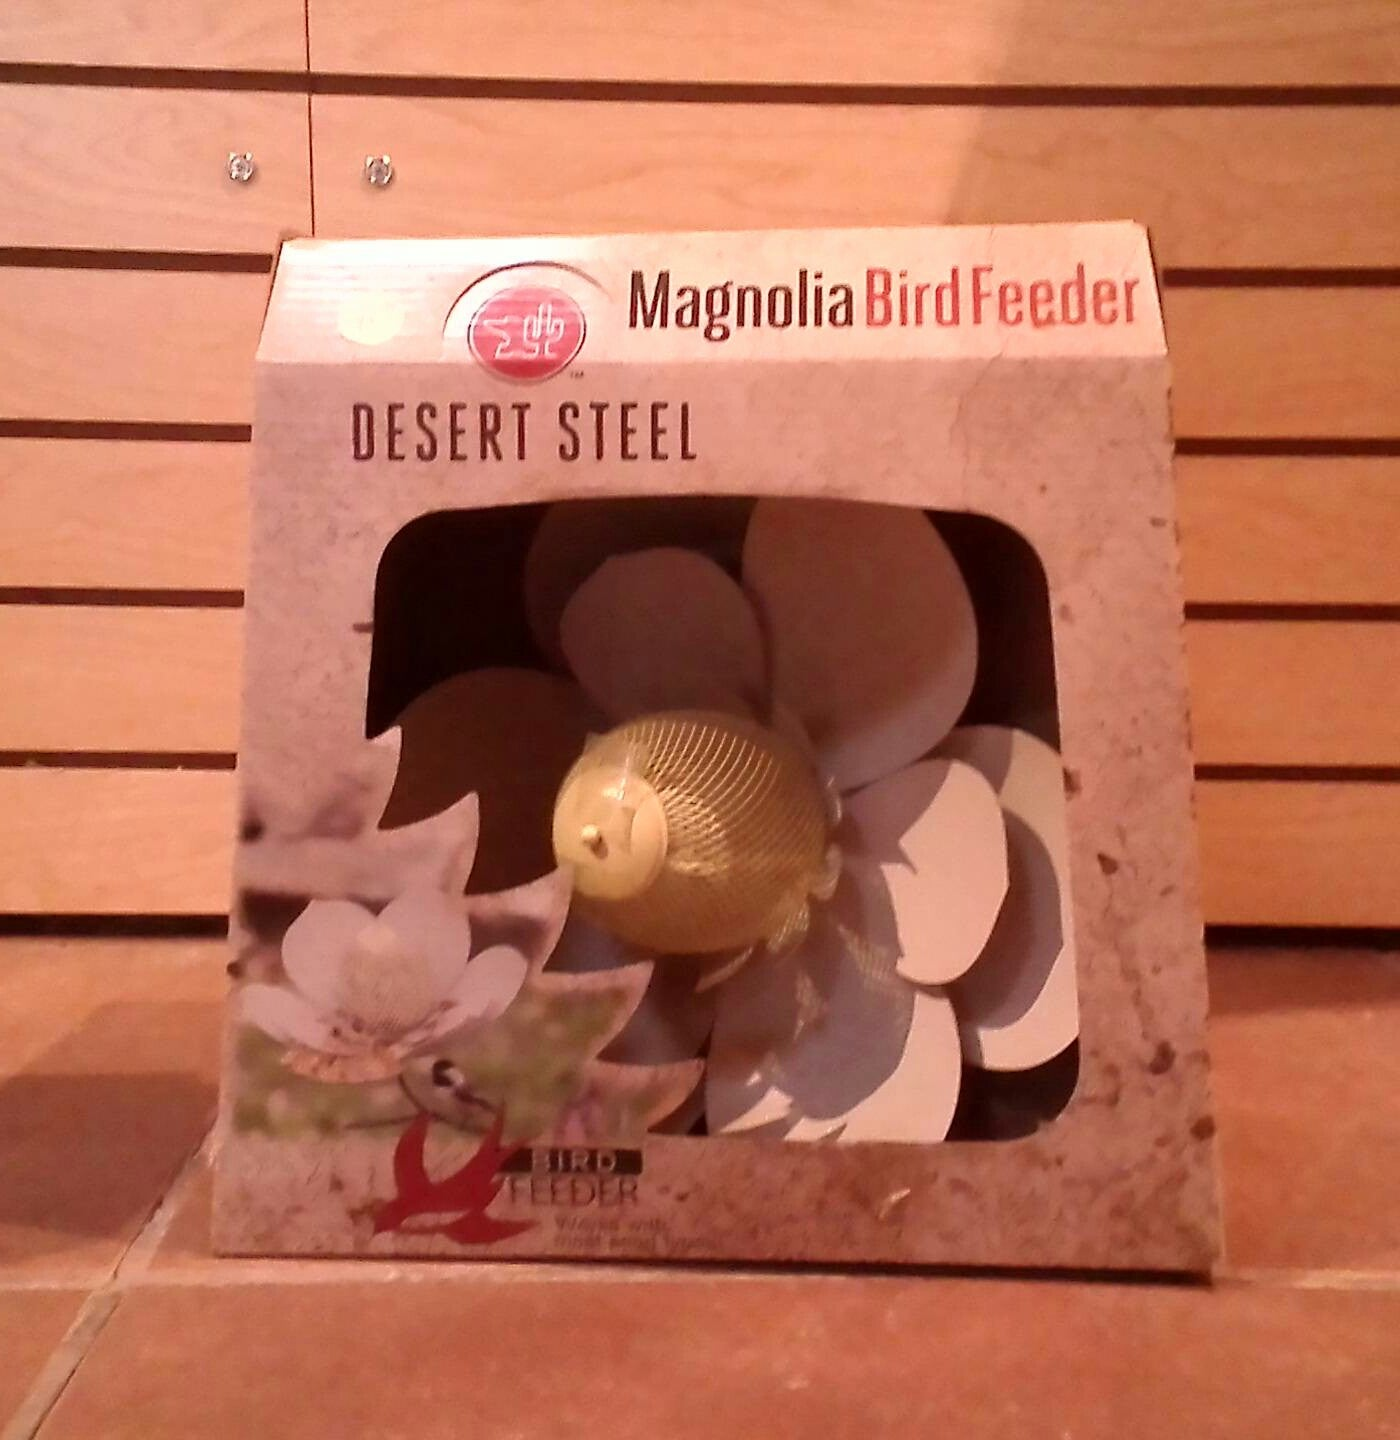 Desert Steel Magnolia Bird Feeder (Available for Pickup at The Birdhouse in Tubac Arizona)